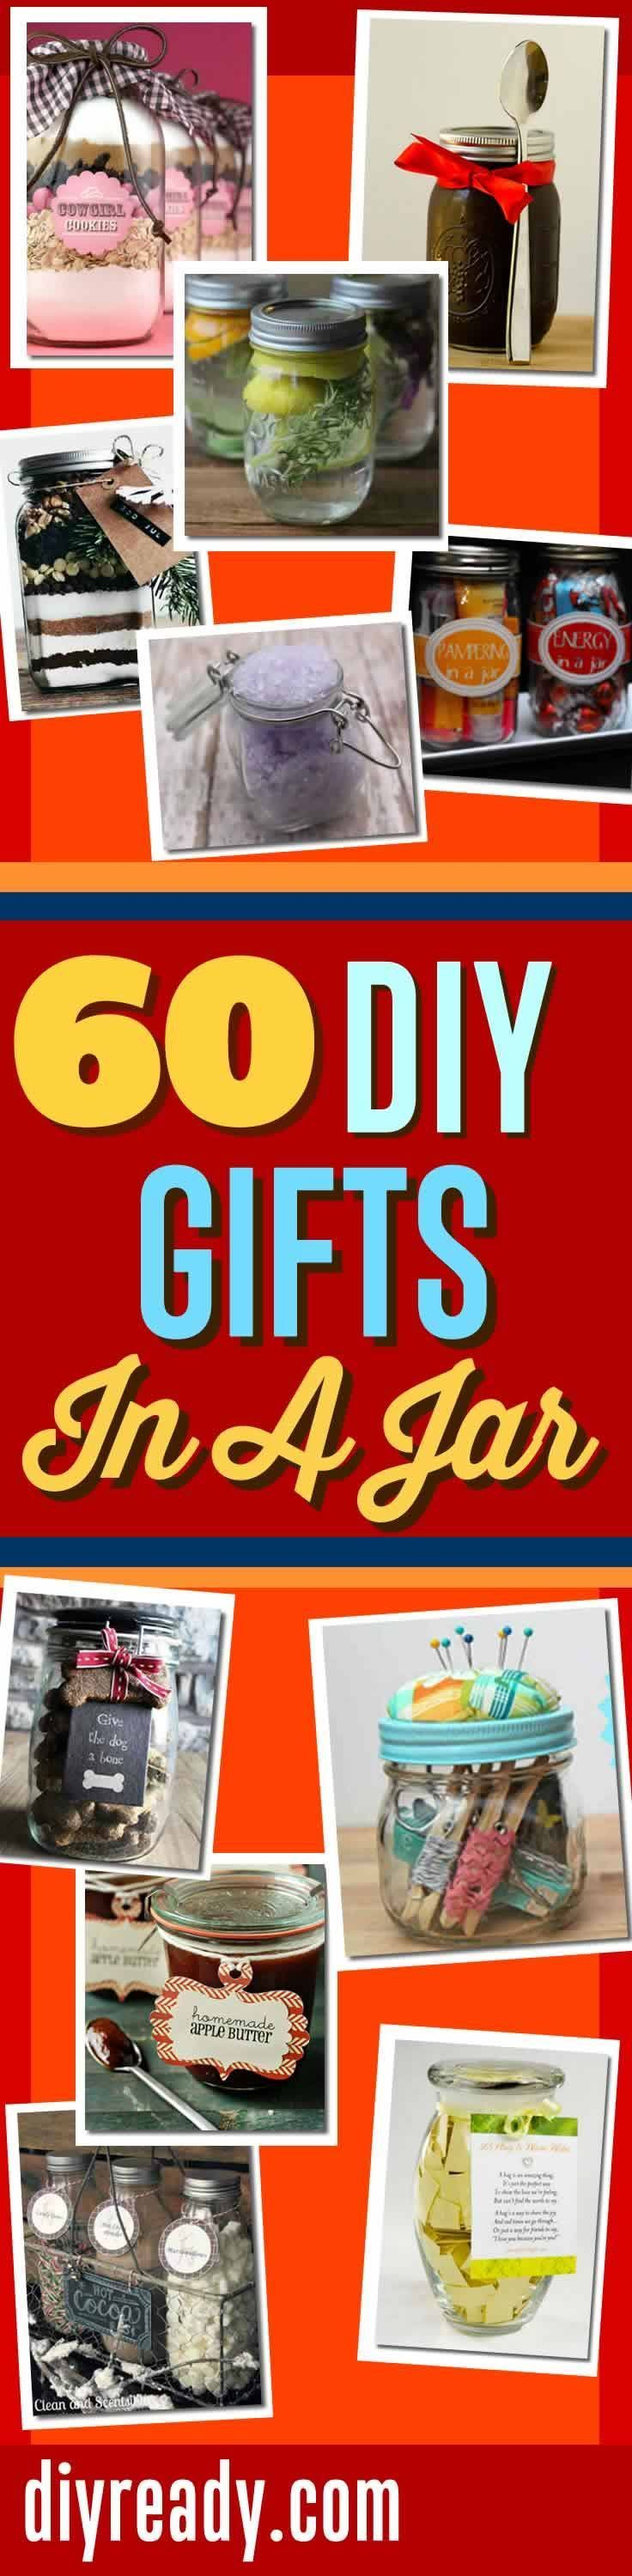 DIY Gifts In A Jar   Mason Jar Gift Ideas, DIY Projects and Homemade Gifts http://diyready.com/60-cute-and-easy-diy-gifts-in-a-jar-christmas-gift-ideas/